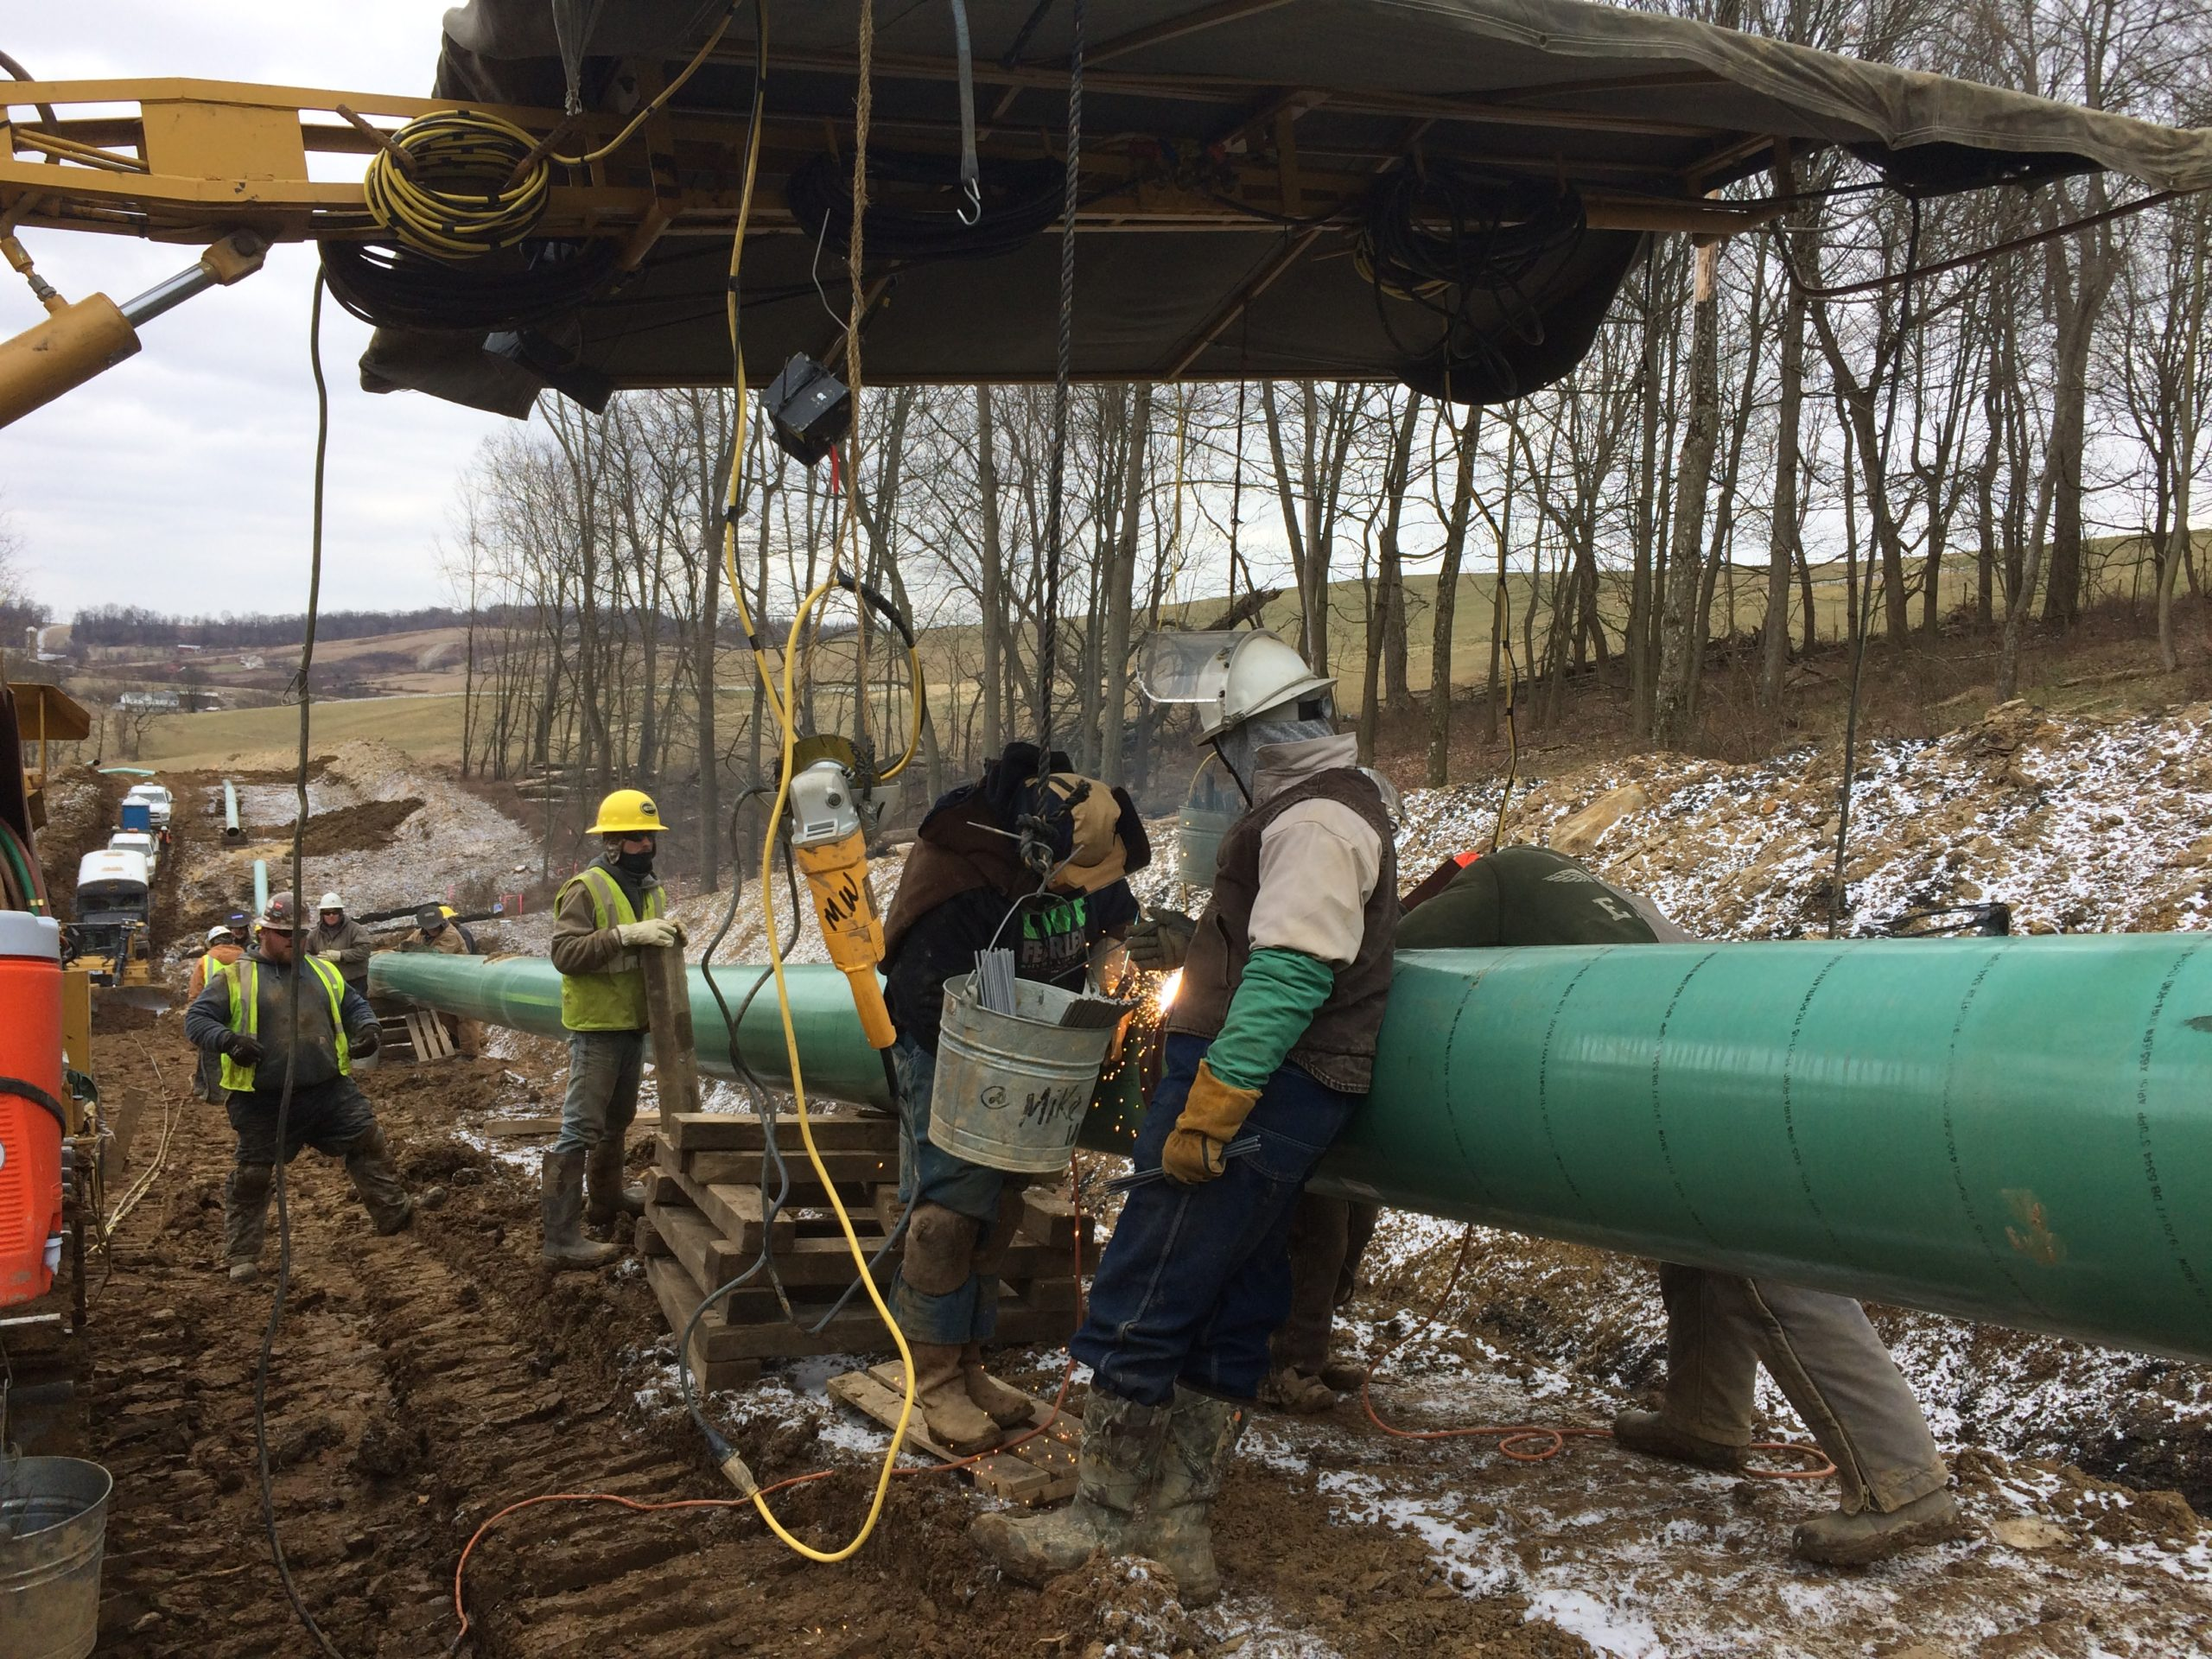 Nearing Completion, Mariner East 2 Pipeline to Safely Deliver the Energy Our Nation Needs